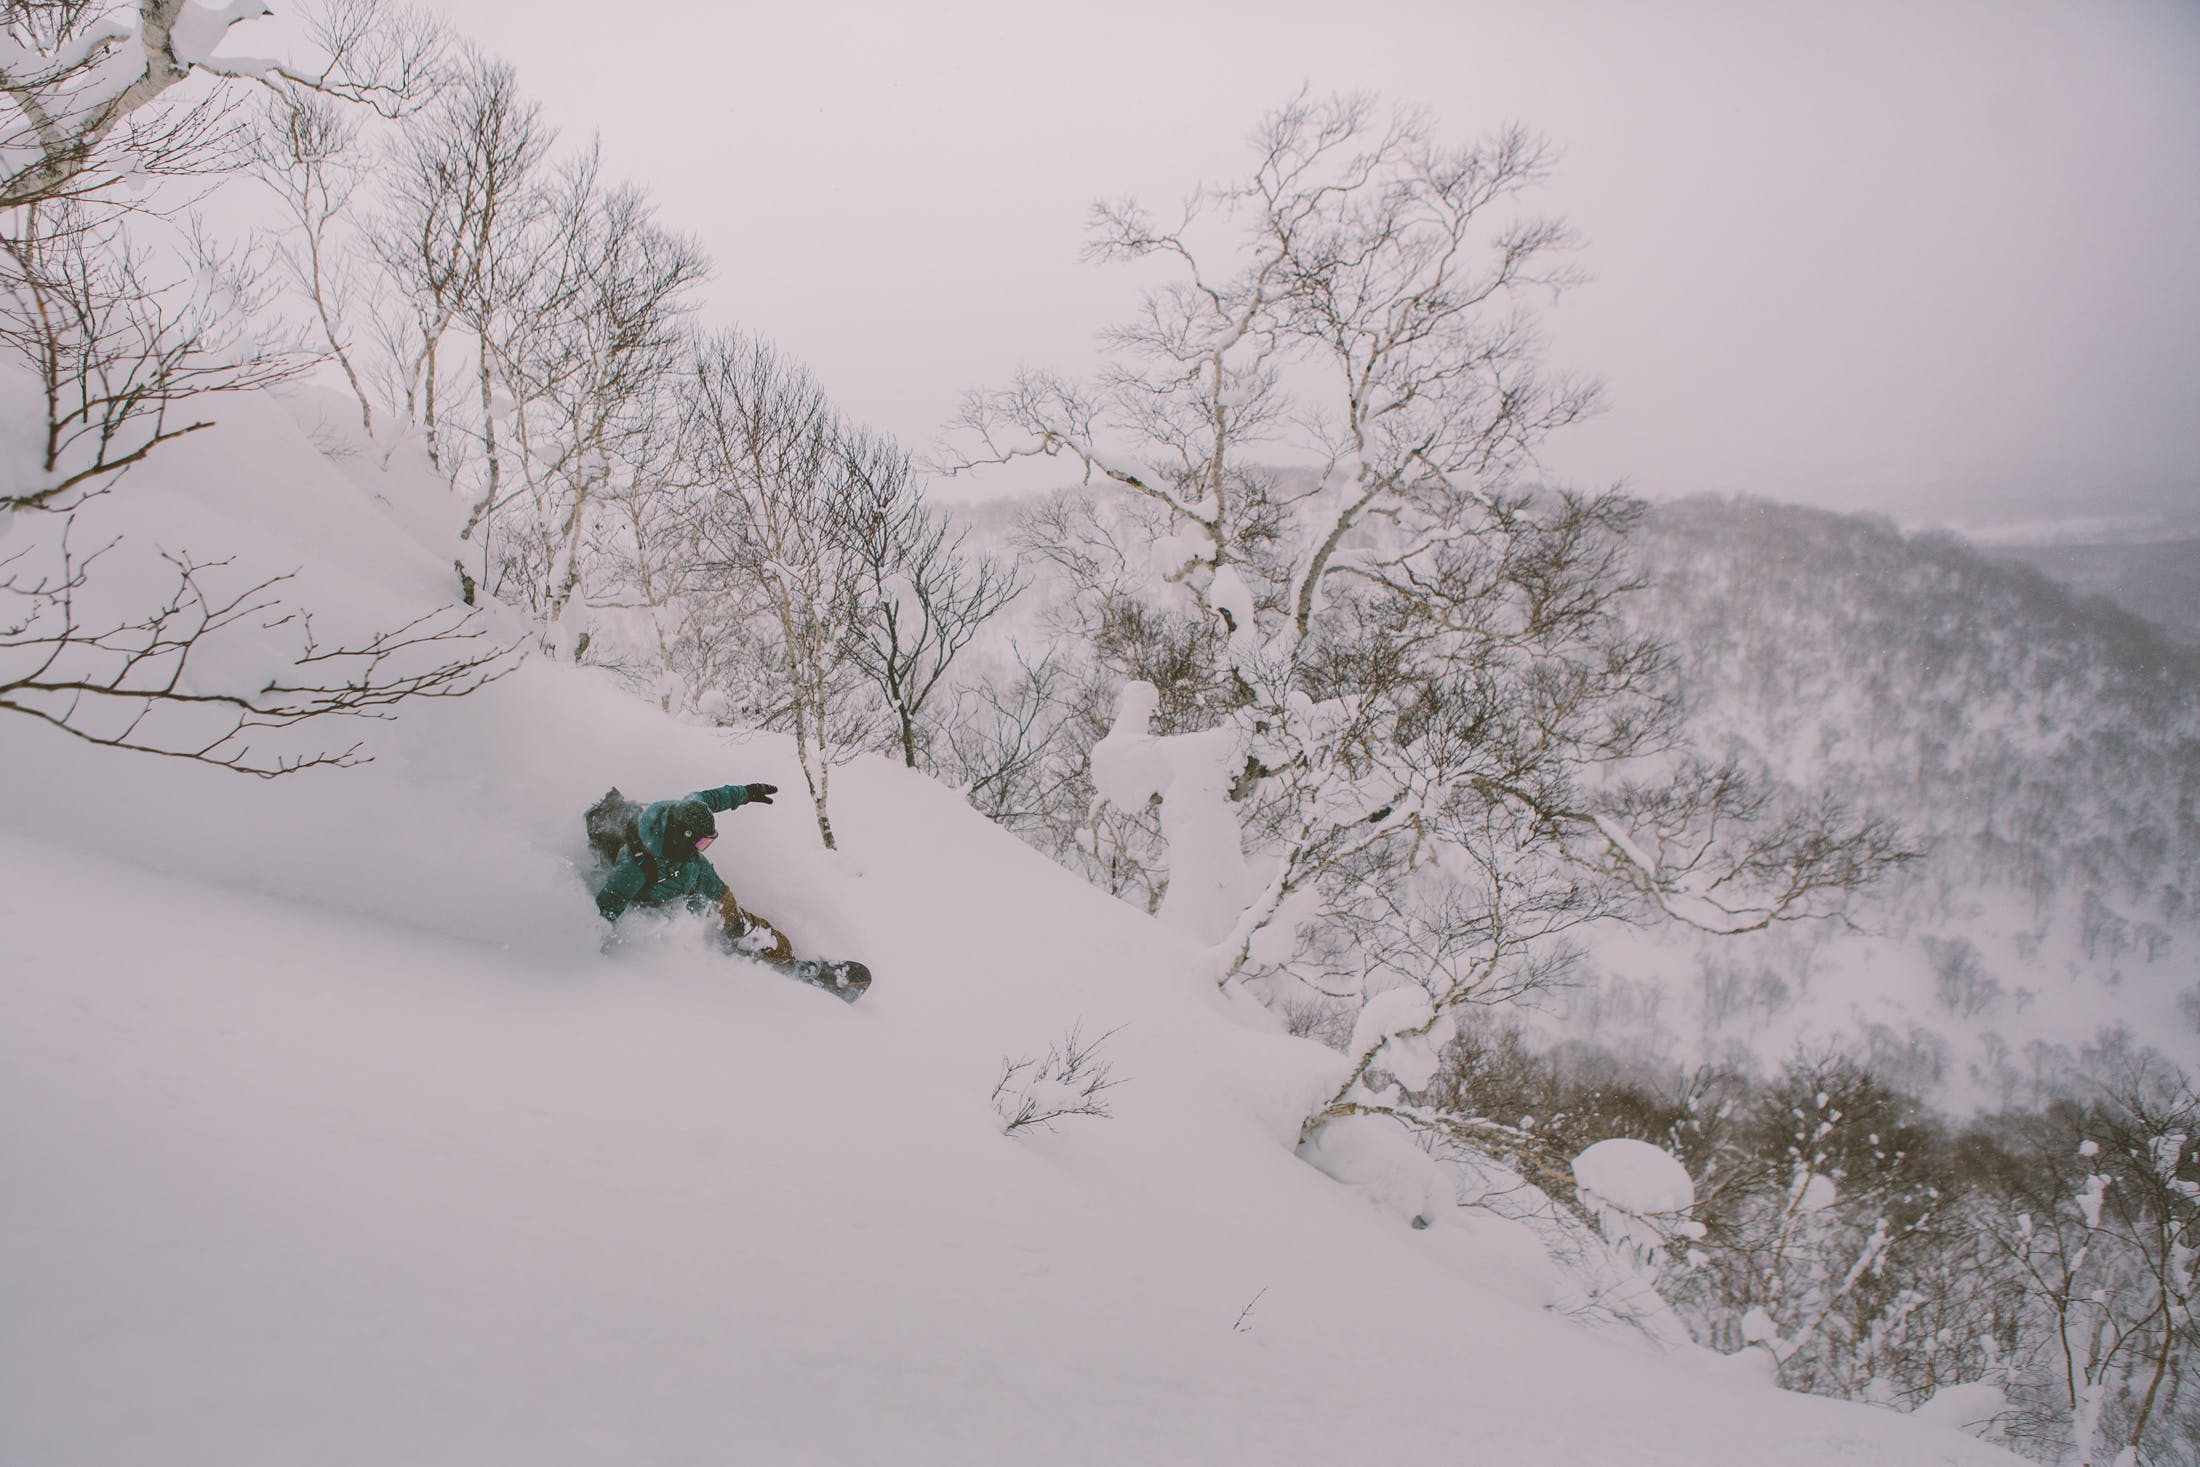 snowboarder powder turn freeriding Japan